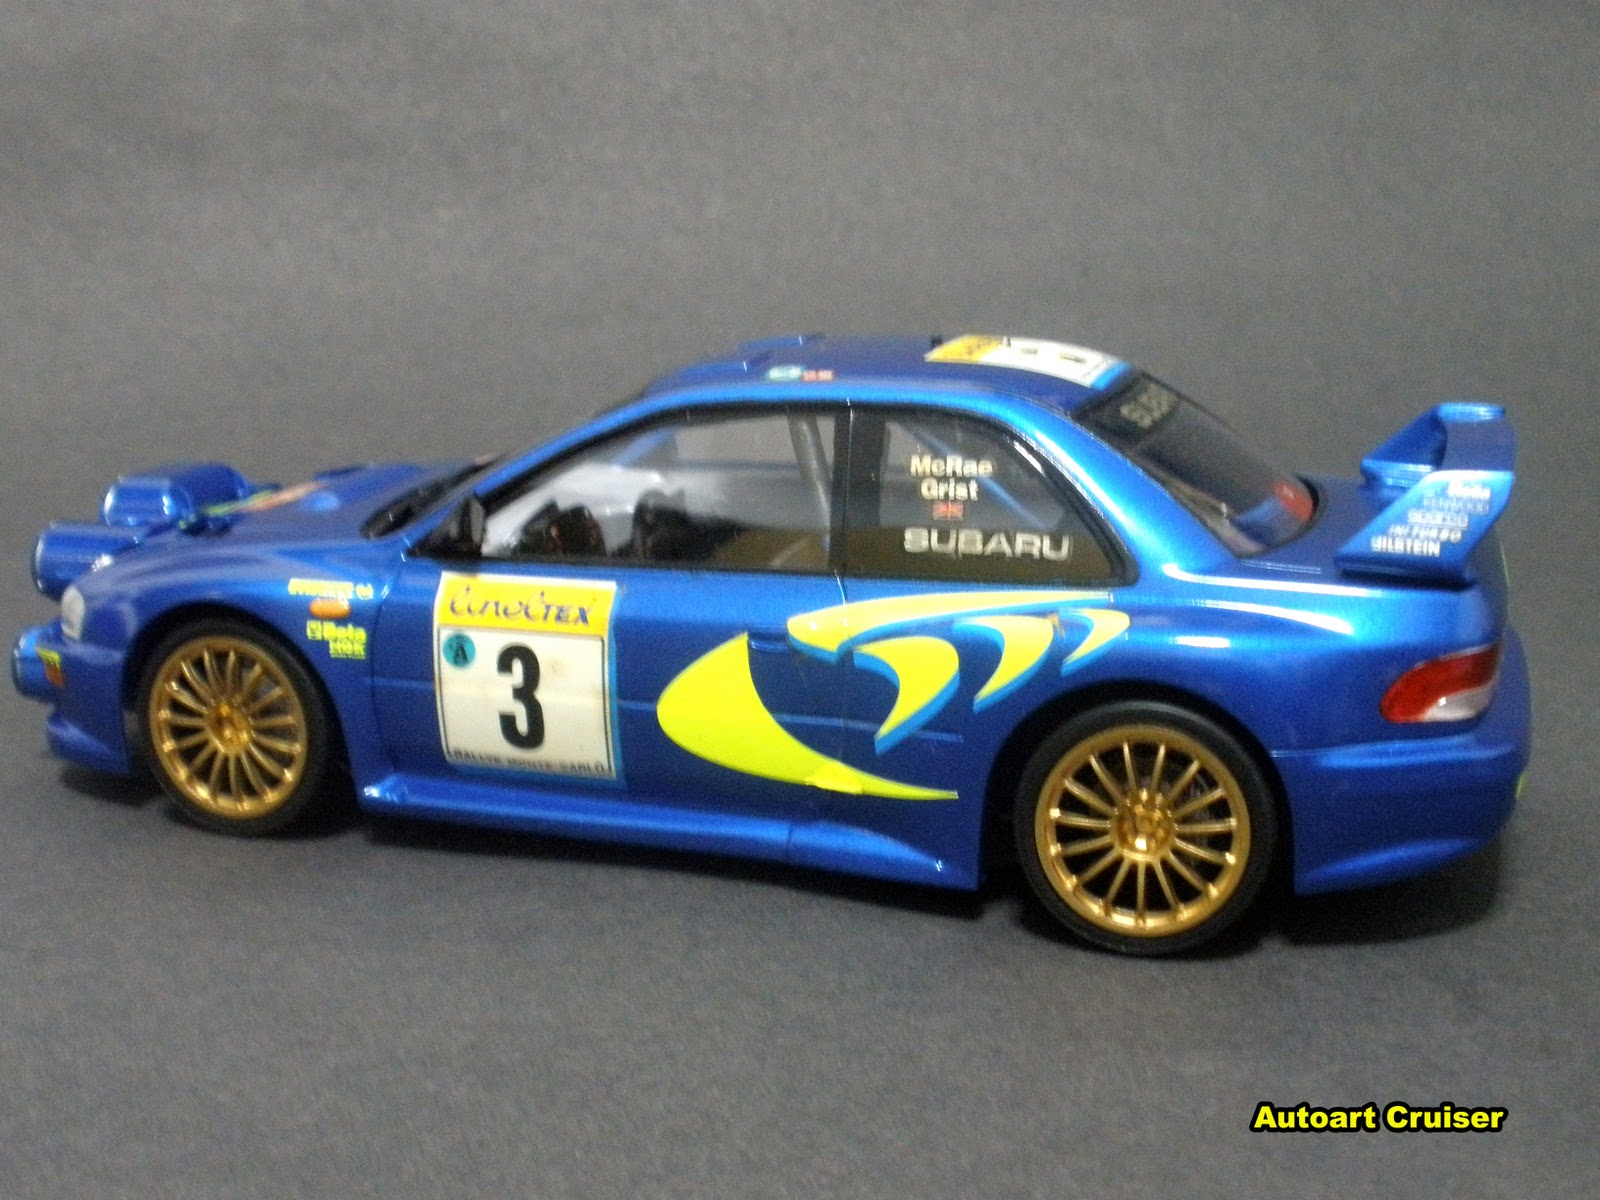 Subaru Wrc http://autoartcruiser.blogspot.com/2011/02/re-shoot-of-mytamiya-124-wrc-subaru.html